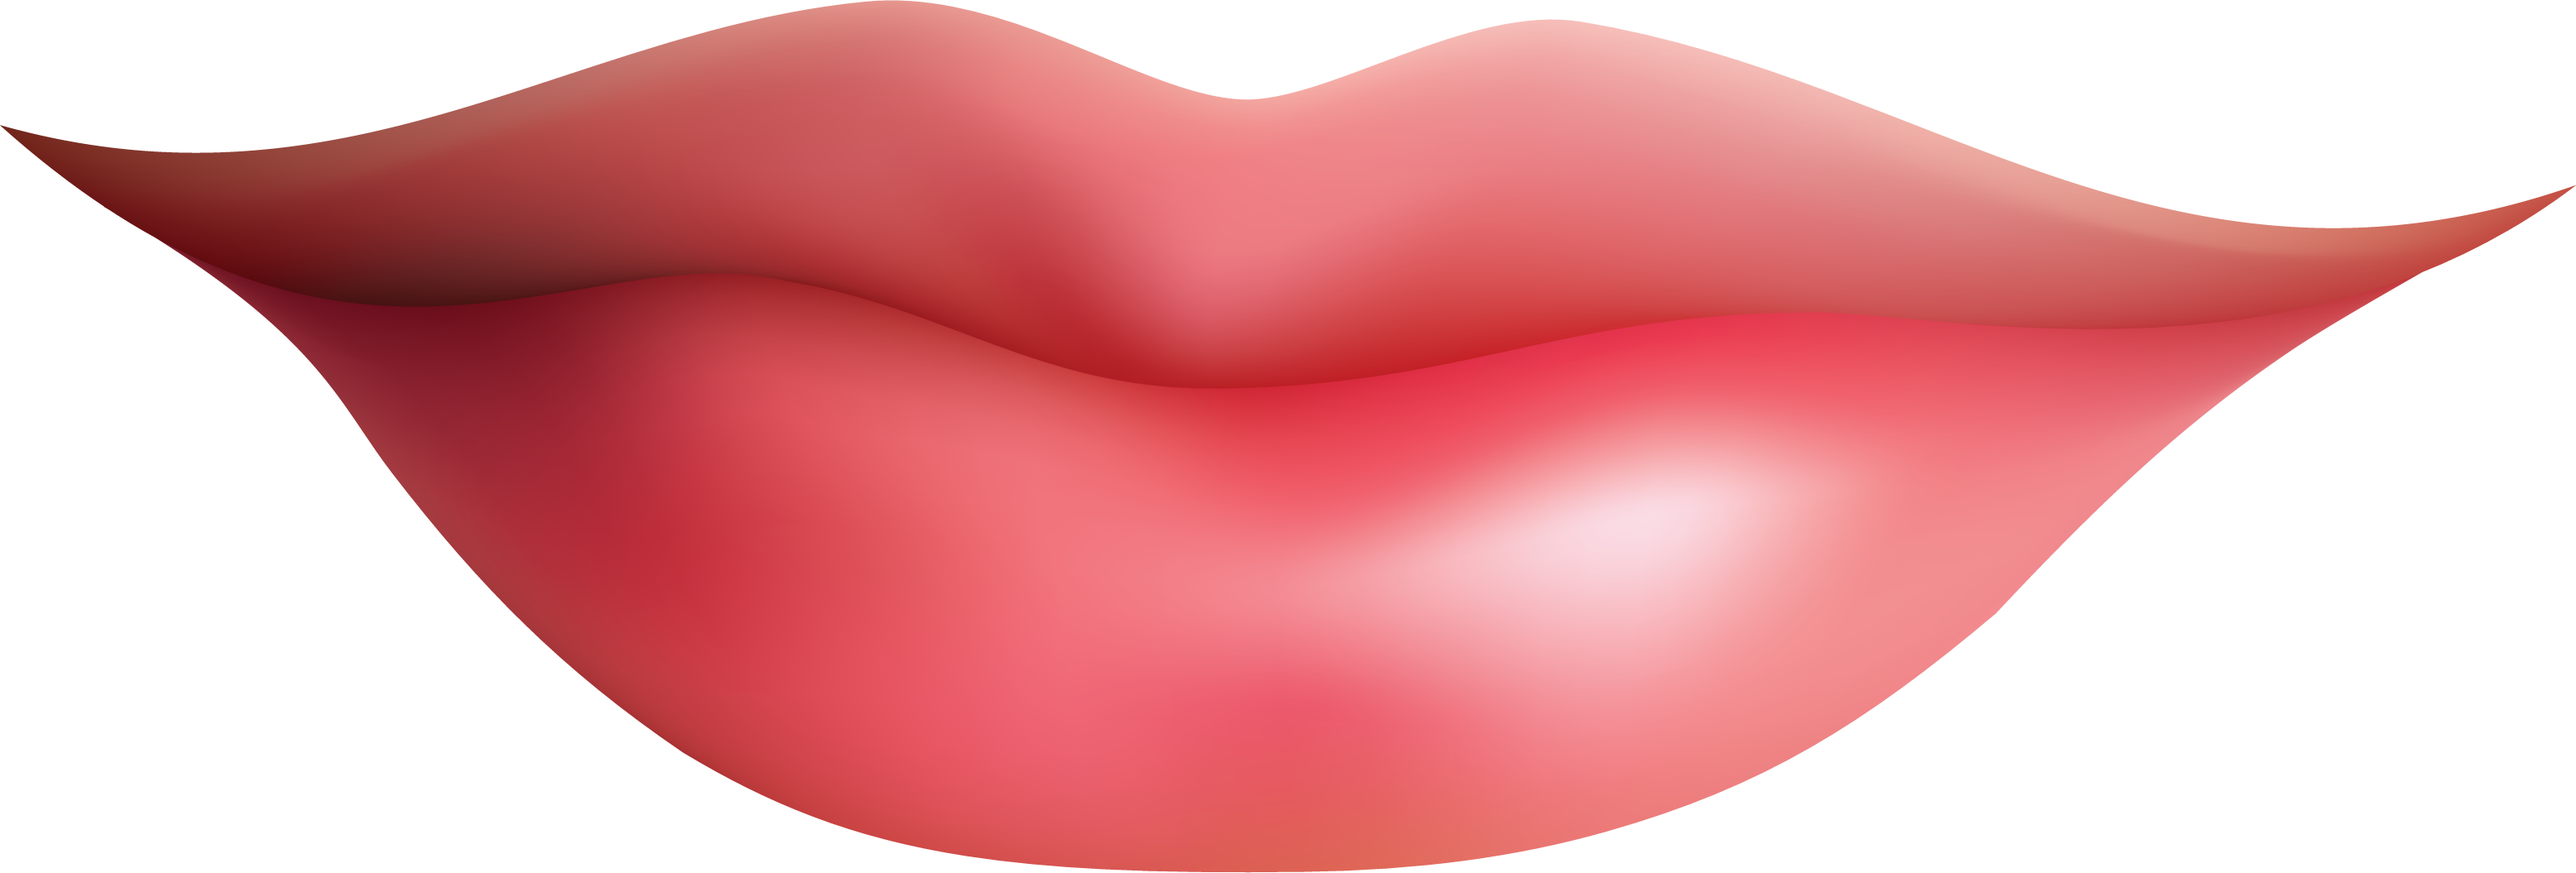 Clipart Lips Clipart Image - Smile Lips, Transparent background PNG HD thumbnail